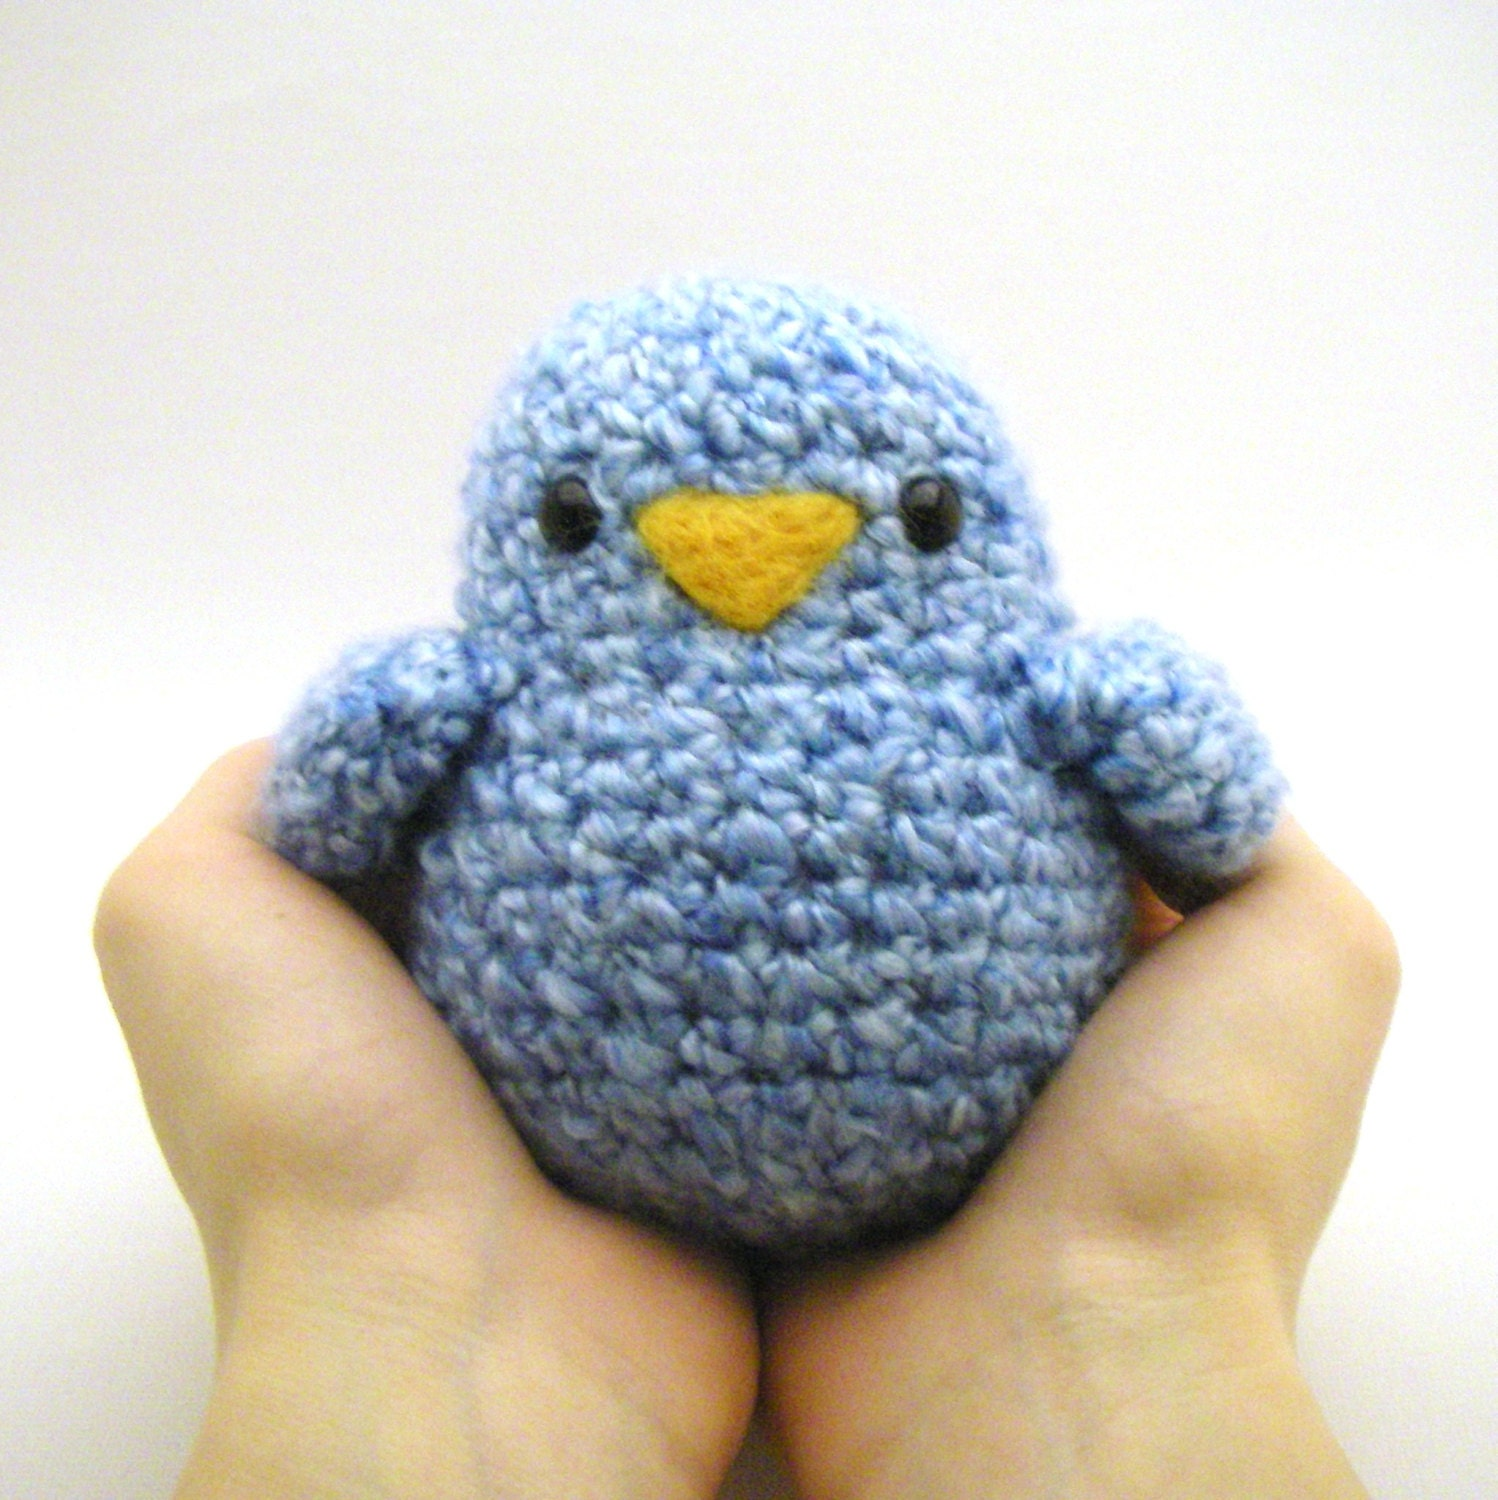 Crochet Toys : Crochet Toy Pattern Fat Birdy by Mamachee on Etsy